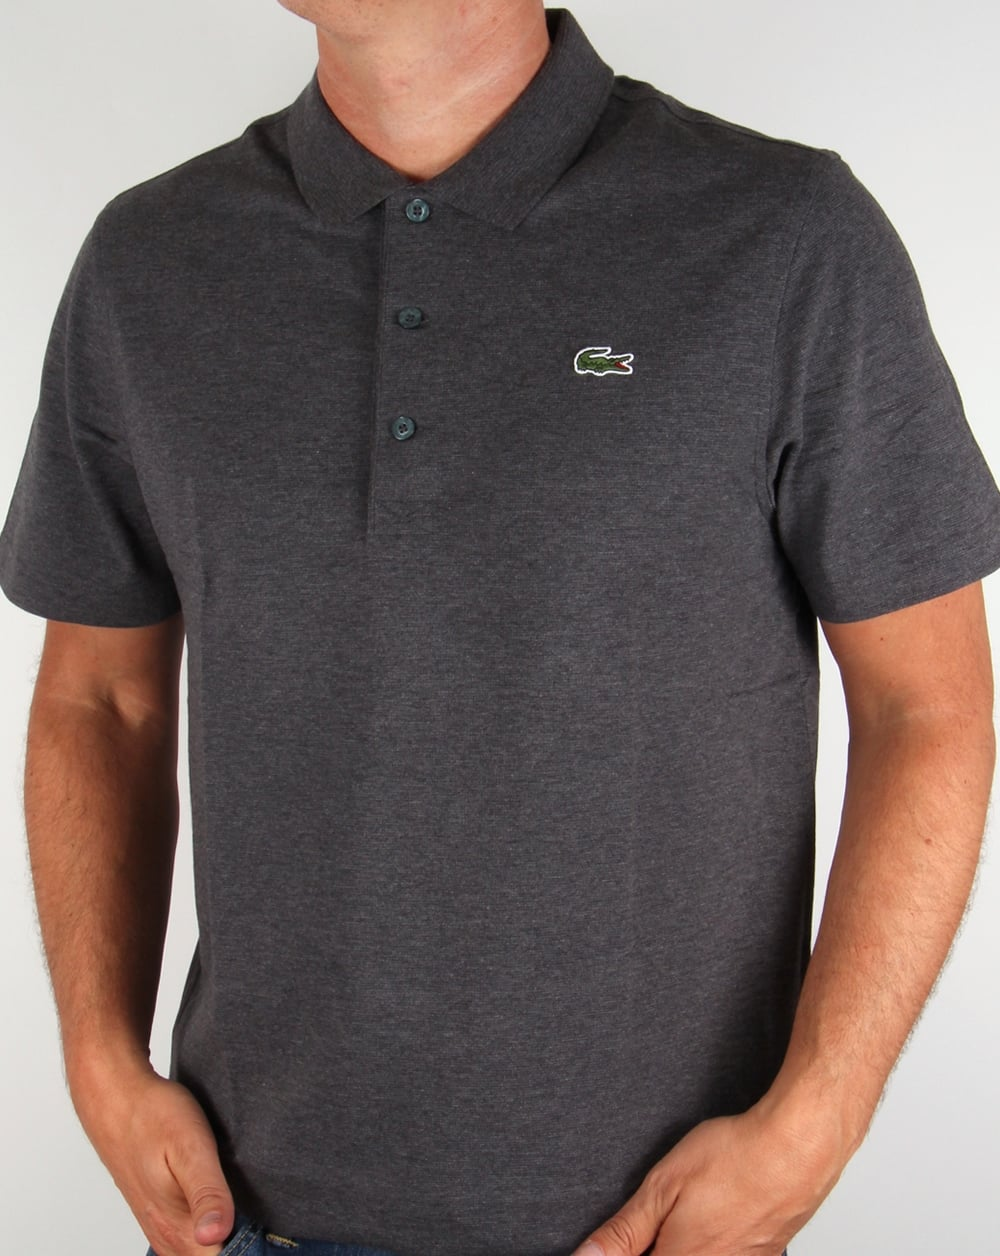 lacoste polo shirt dark grey short sleeve sport